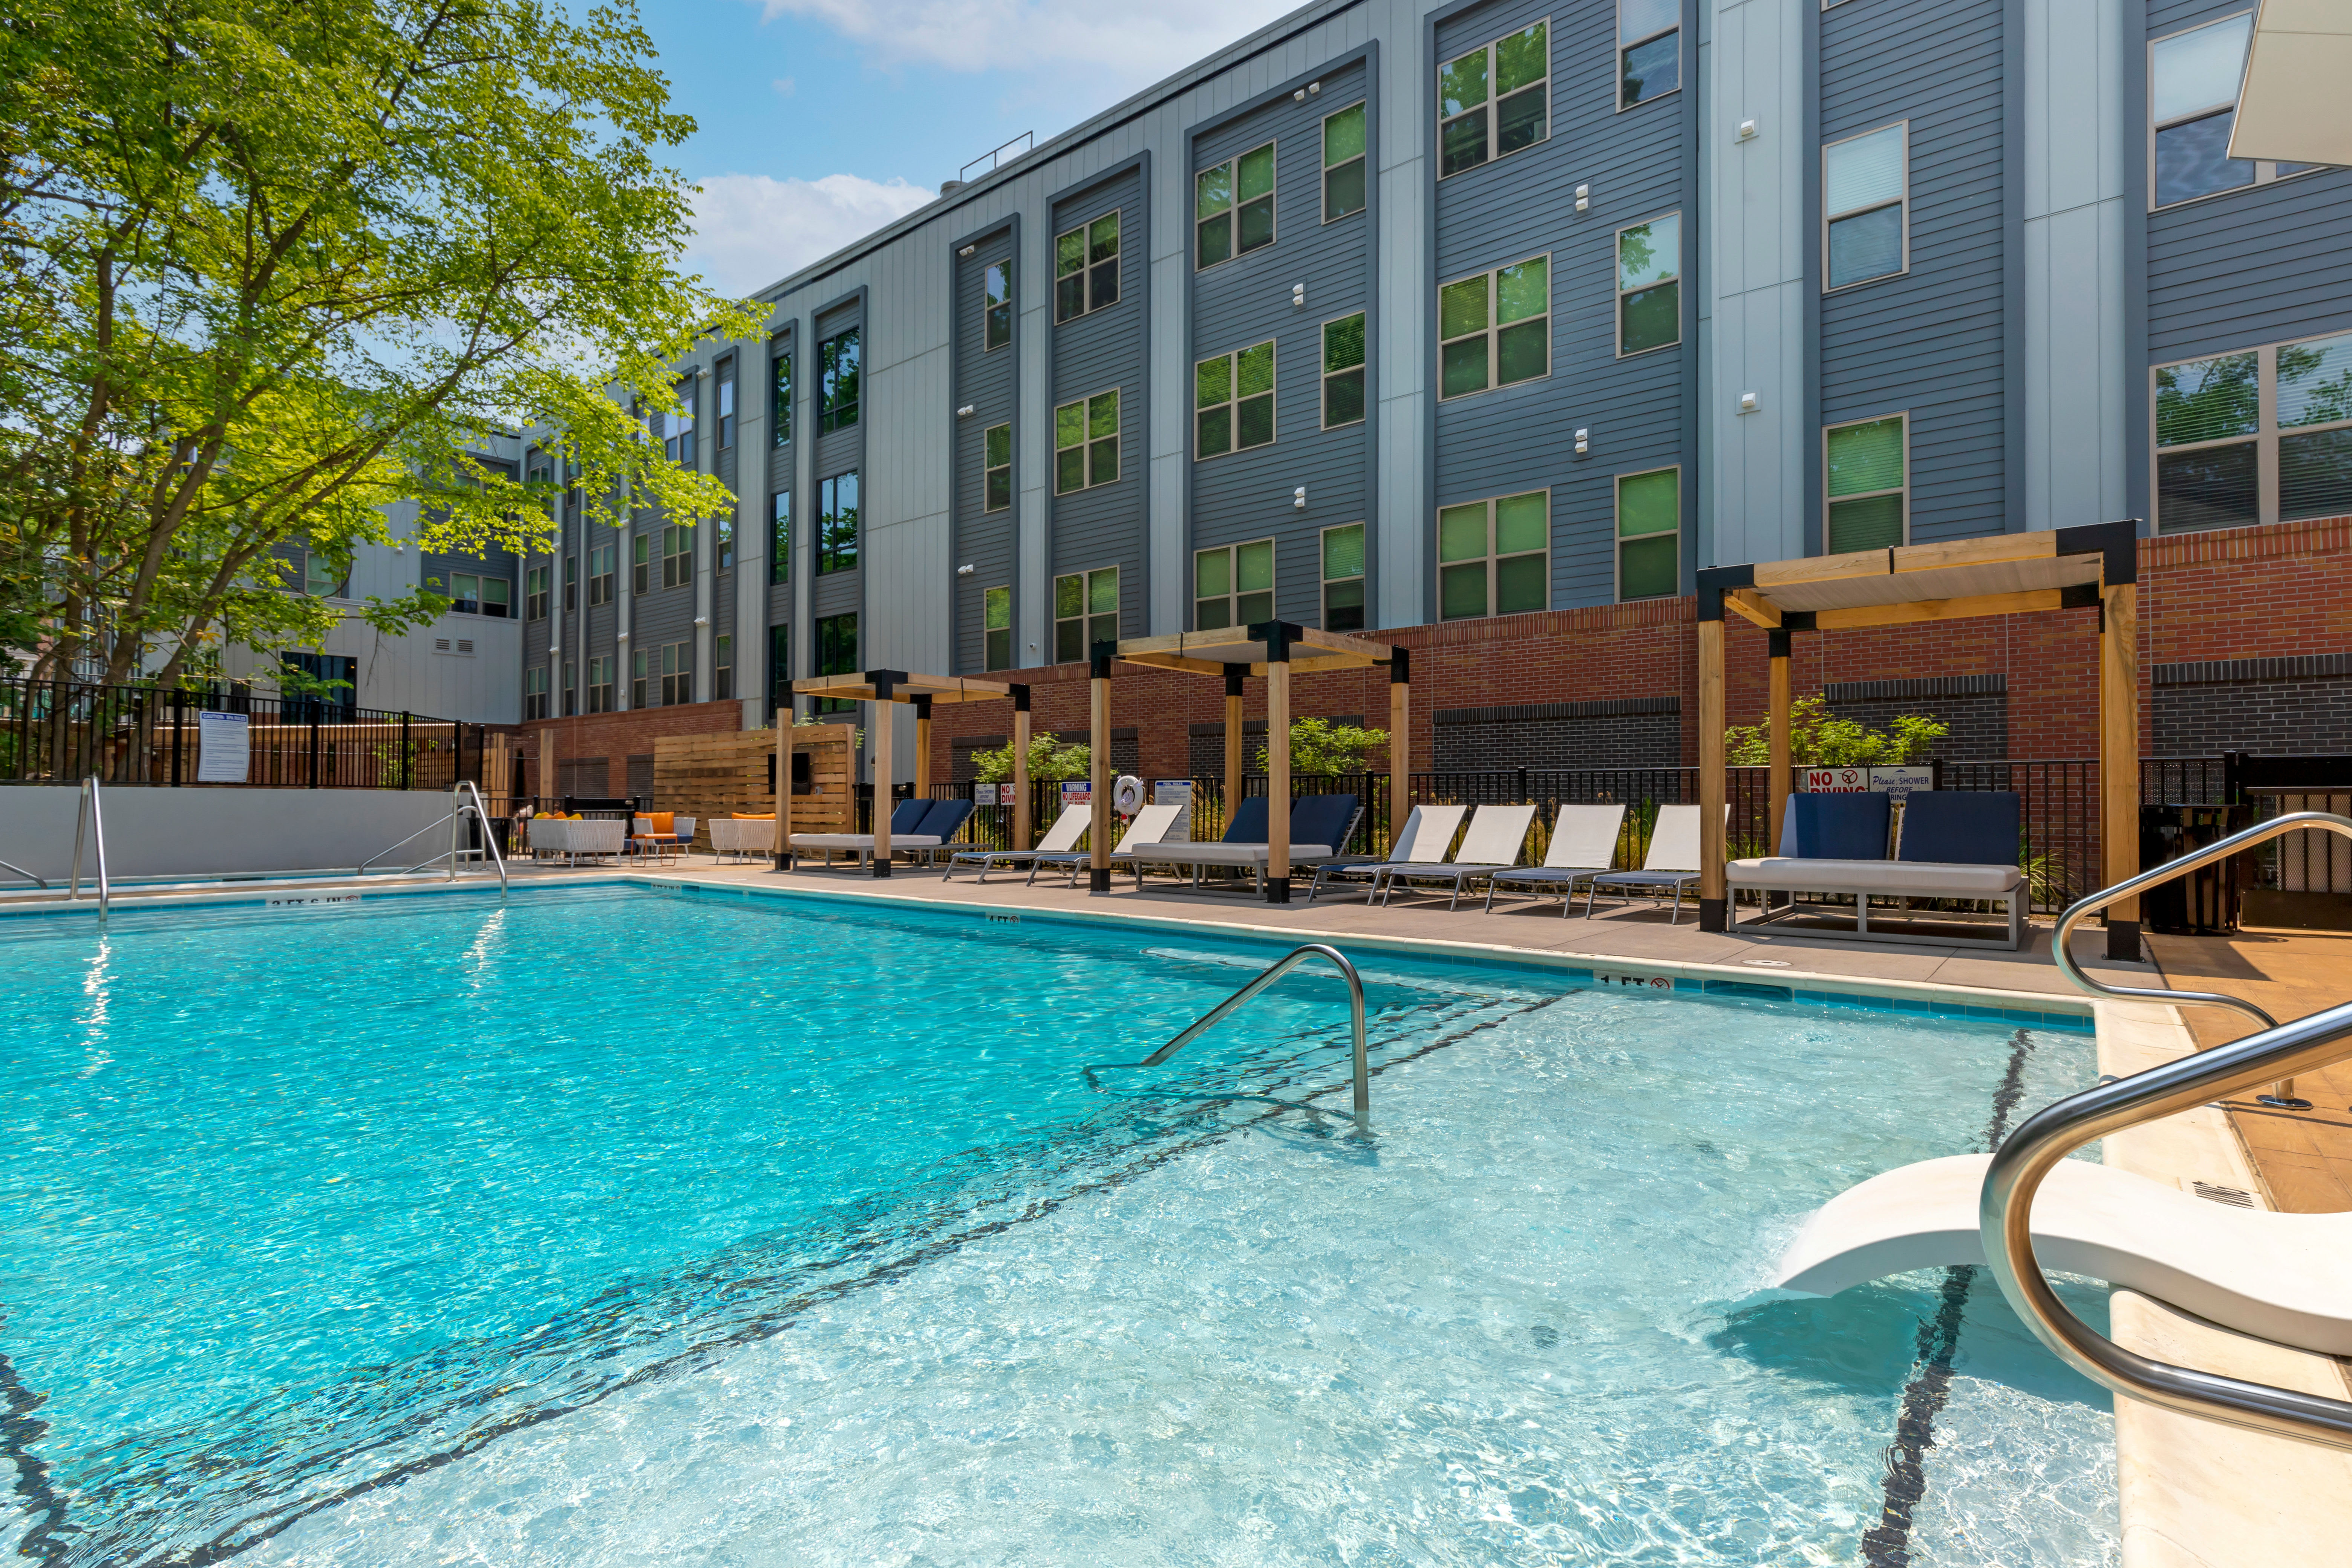 Sparkling swimming pool at UNCOMMON Raleigh in Raleigh, North Carolina